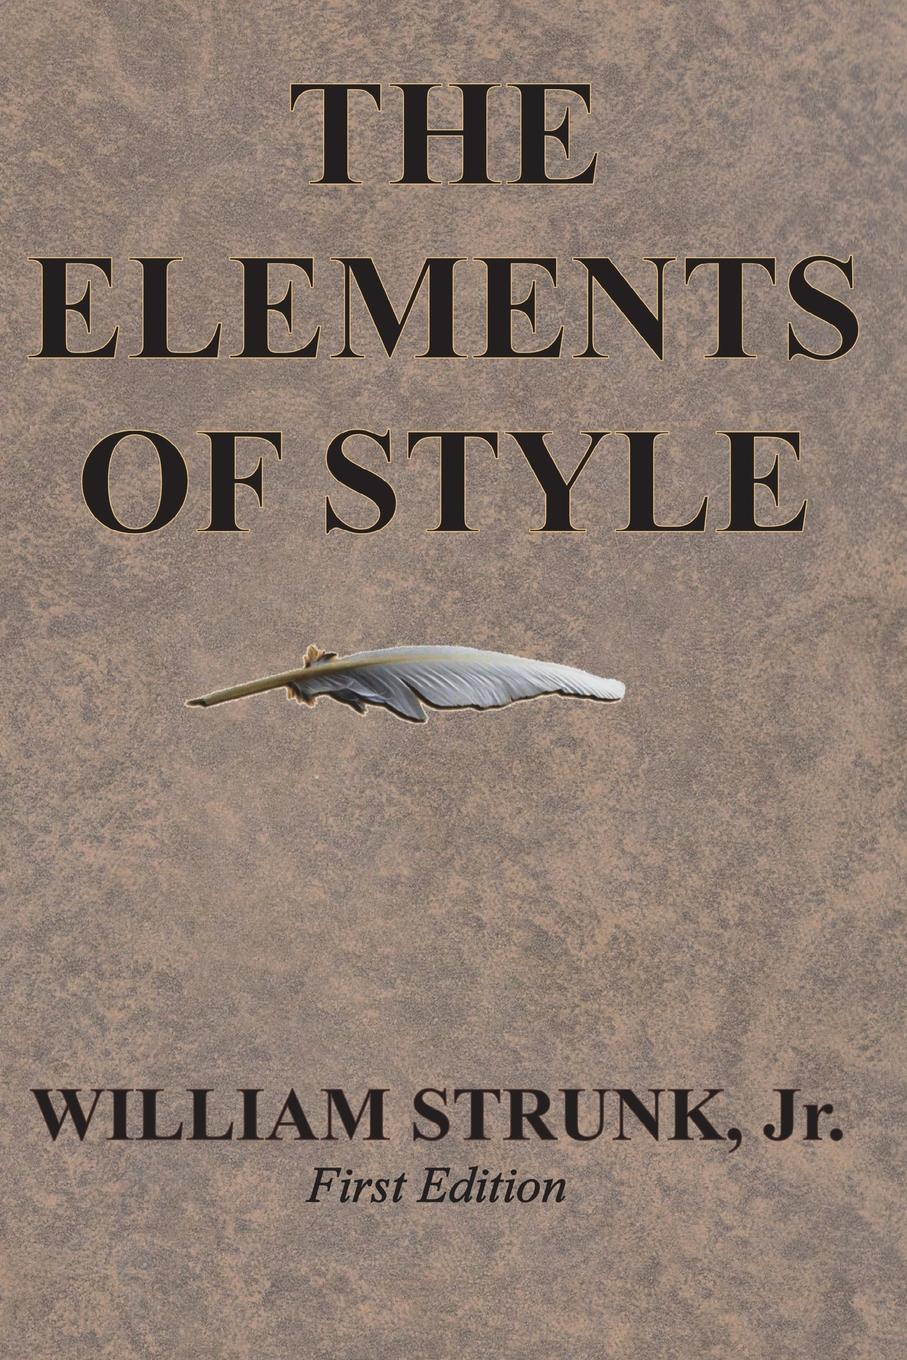 William Strunk Jr. The Elements of Style william jr strunk the elements of style